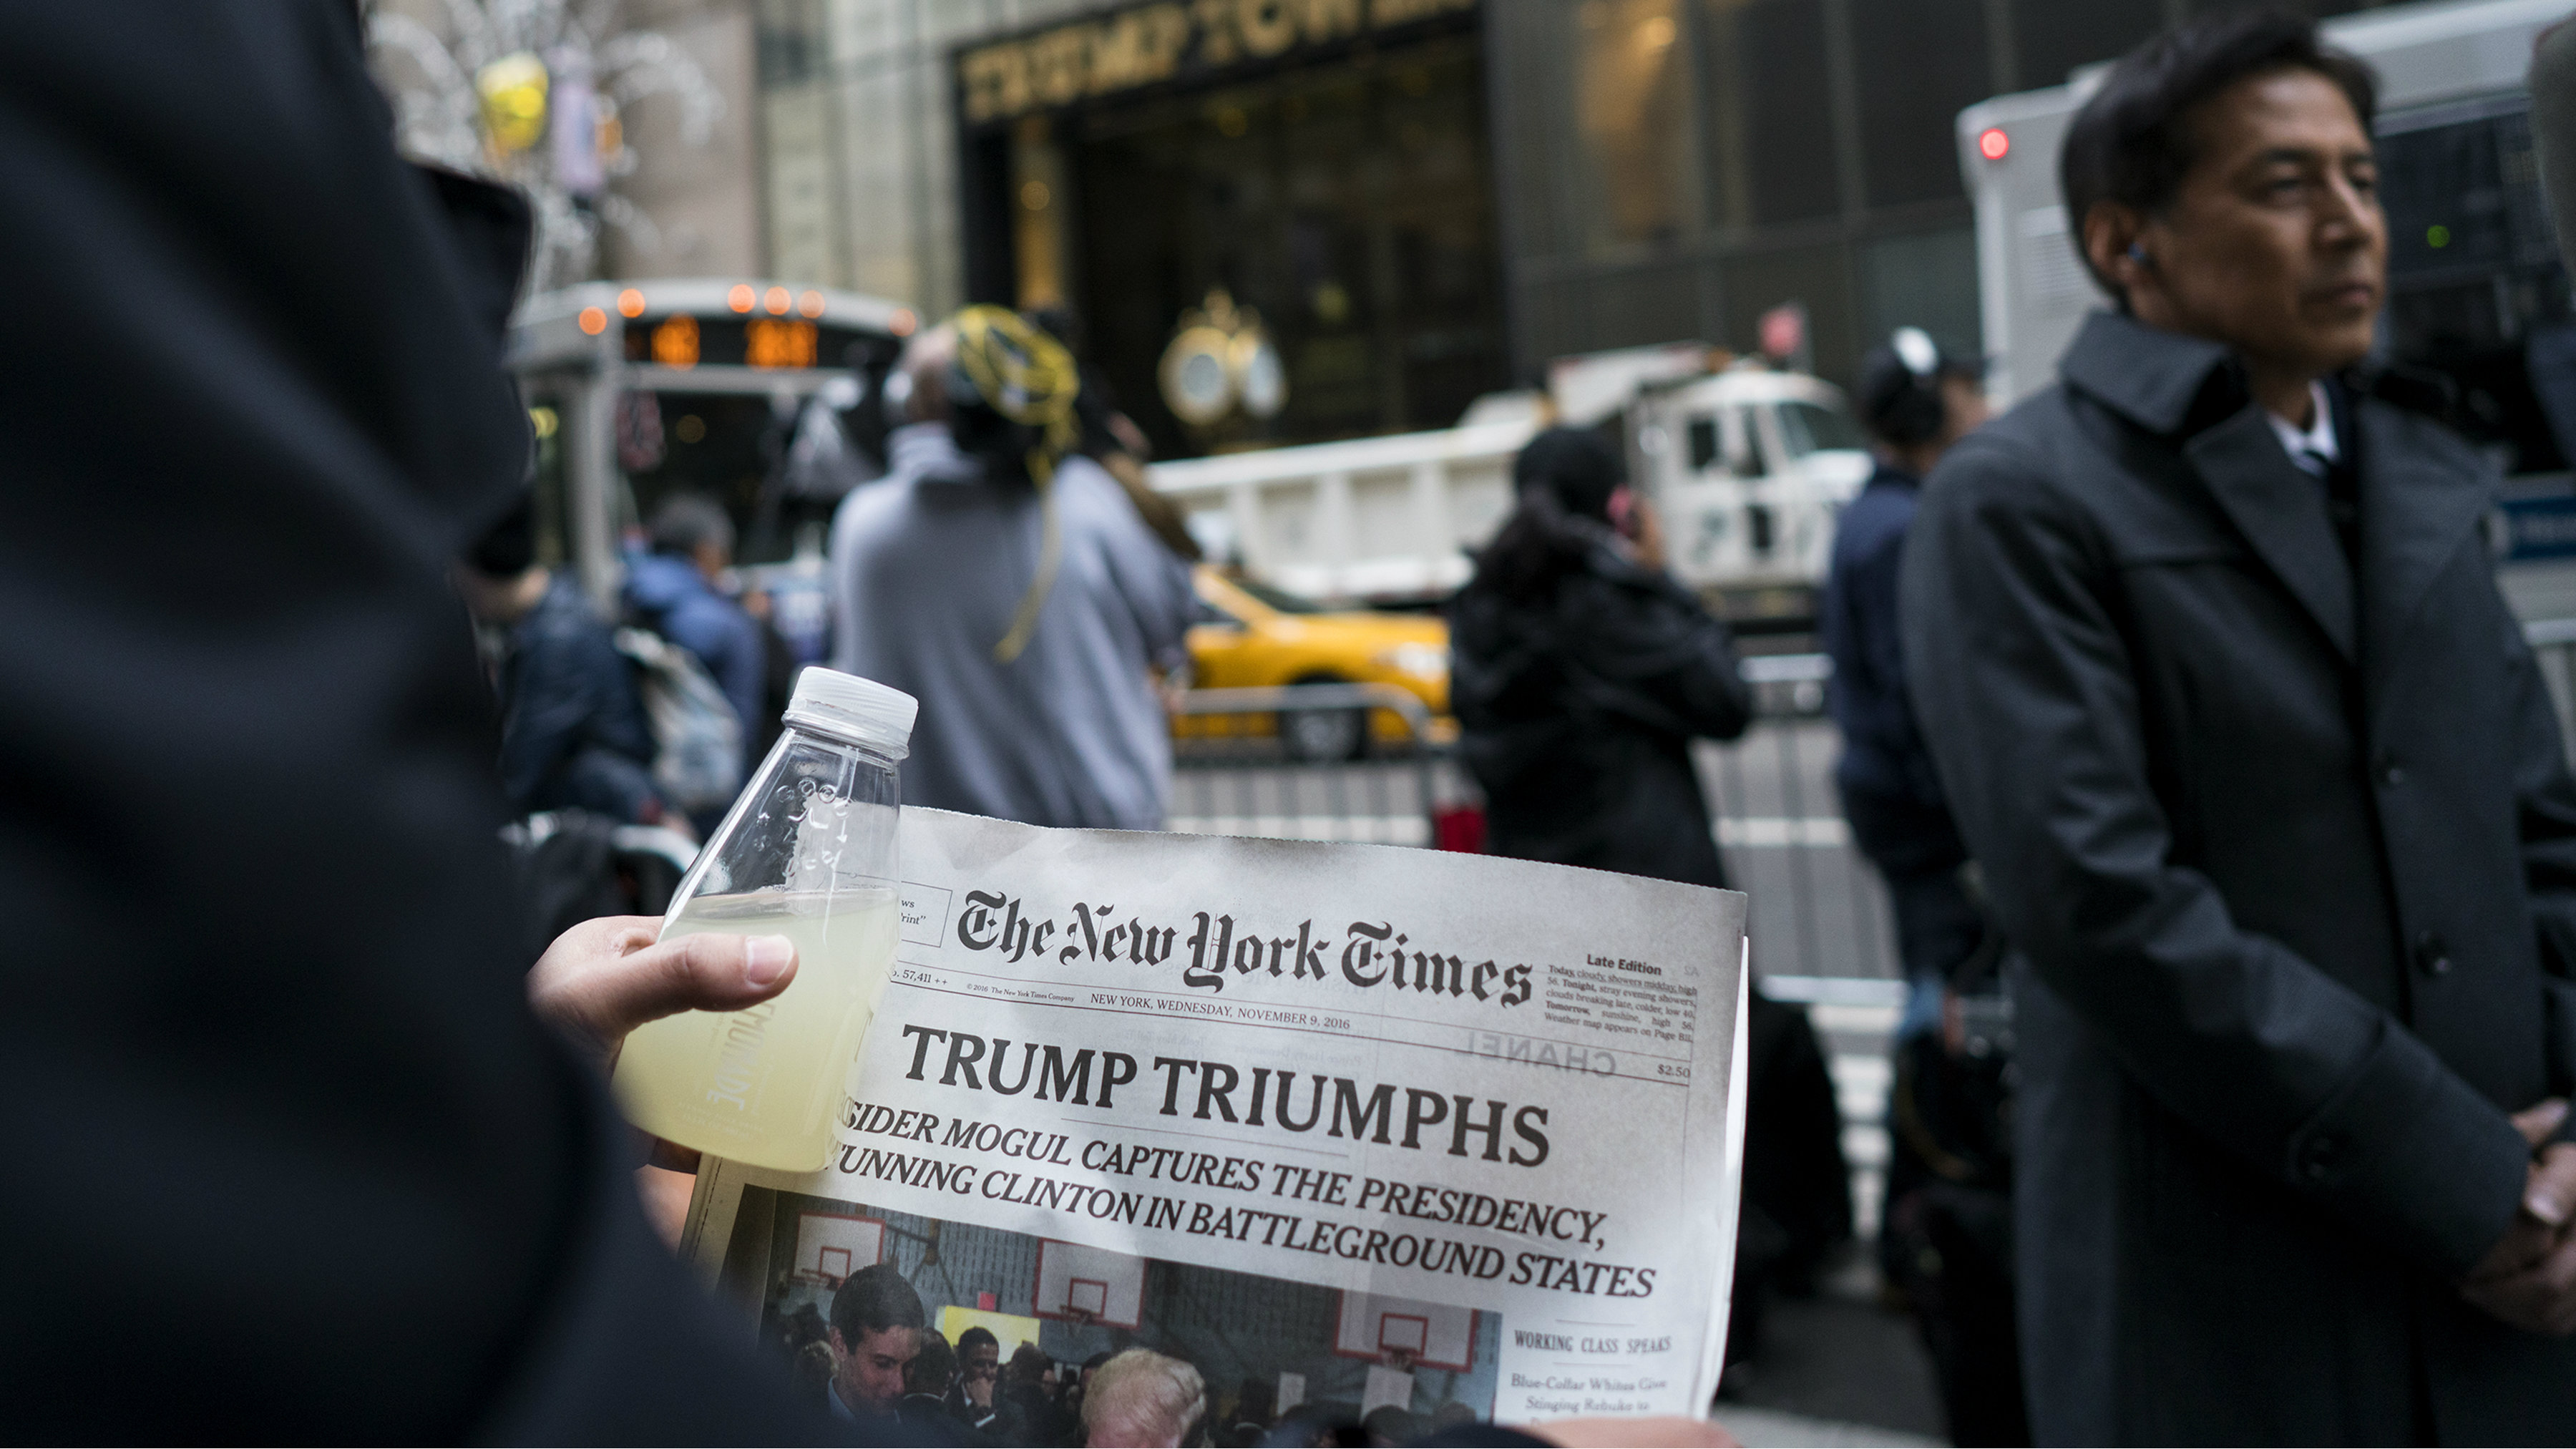 A person holds a newspaper signaling President-elect Donald Trump's victory across 5th Ave. from Trump Tower in New York Wednesday, Nov. 9, 2016.